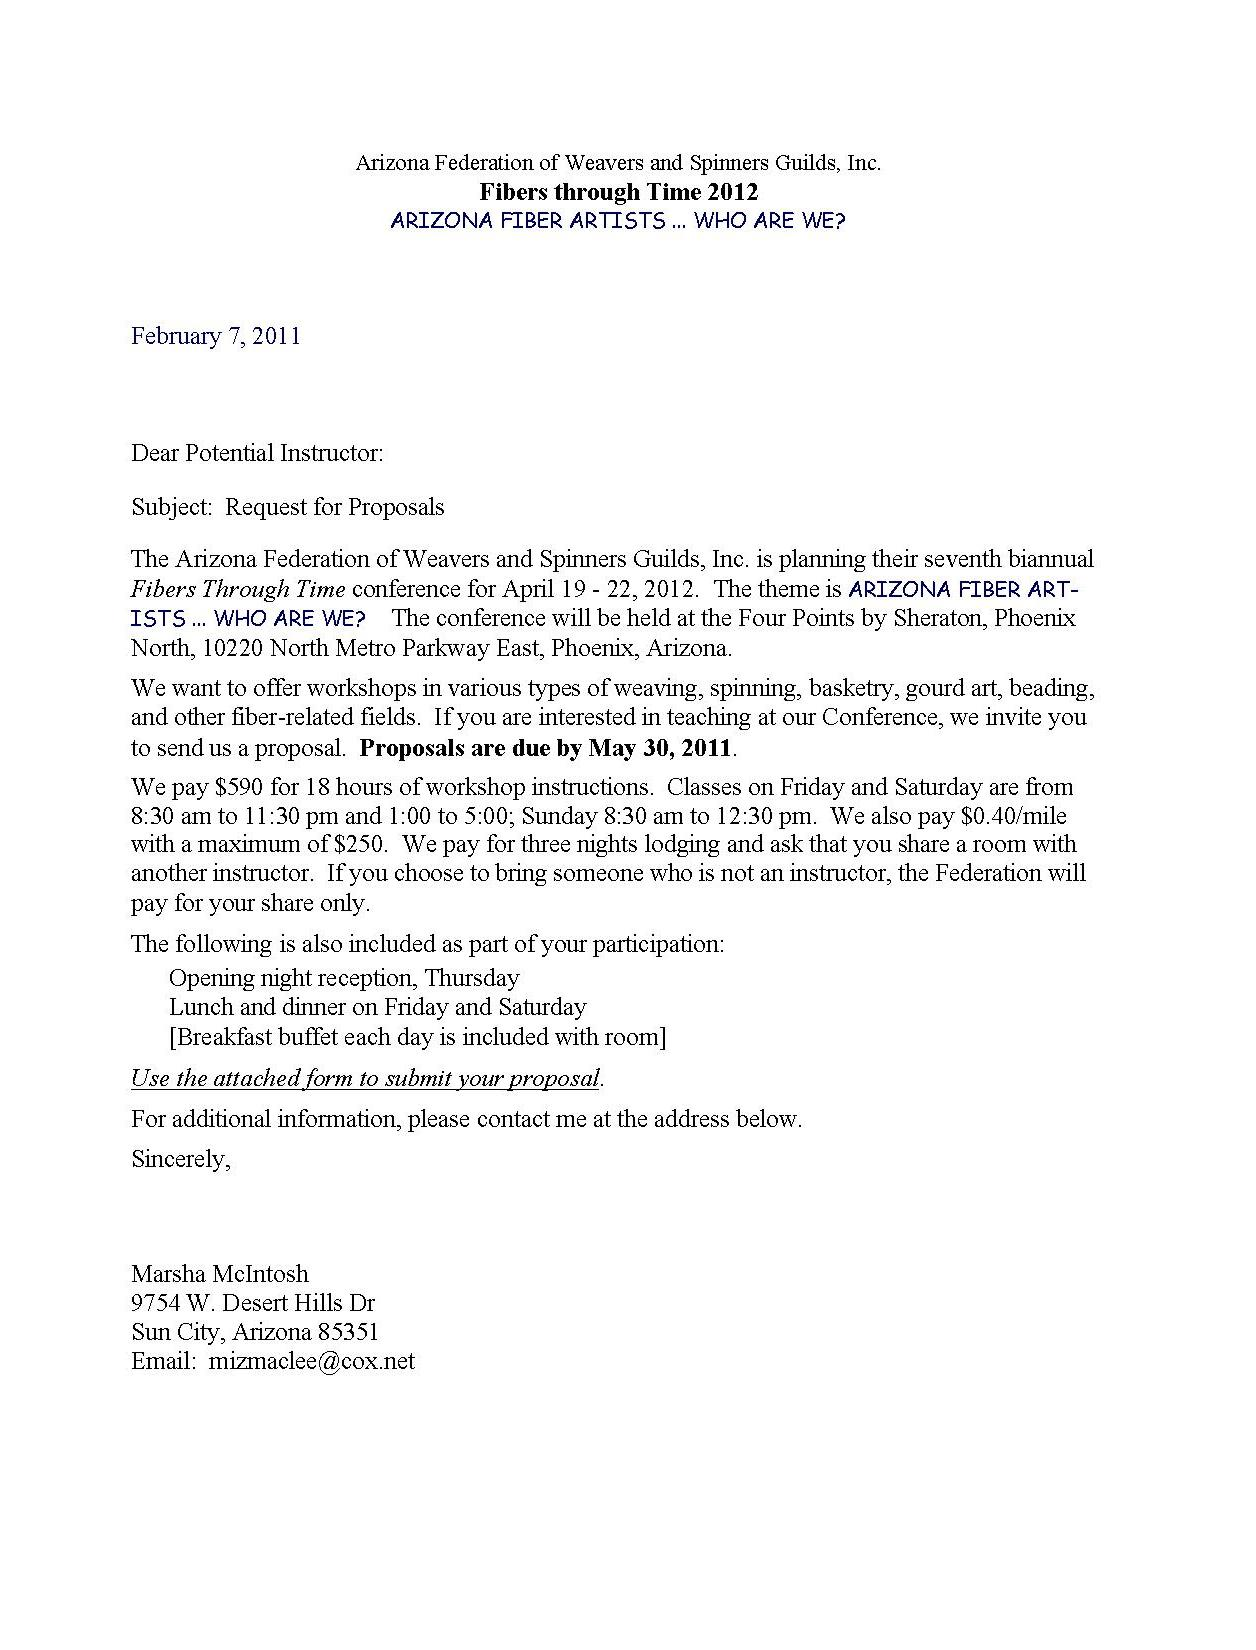 Letter Requesting Proposal 2011 Amazing Pictures